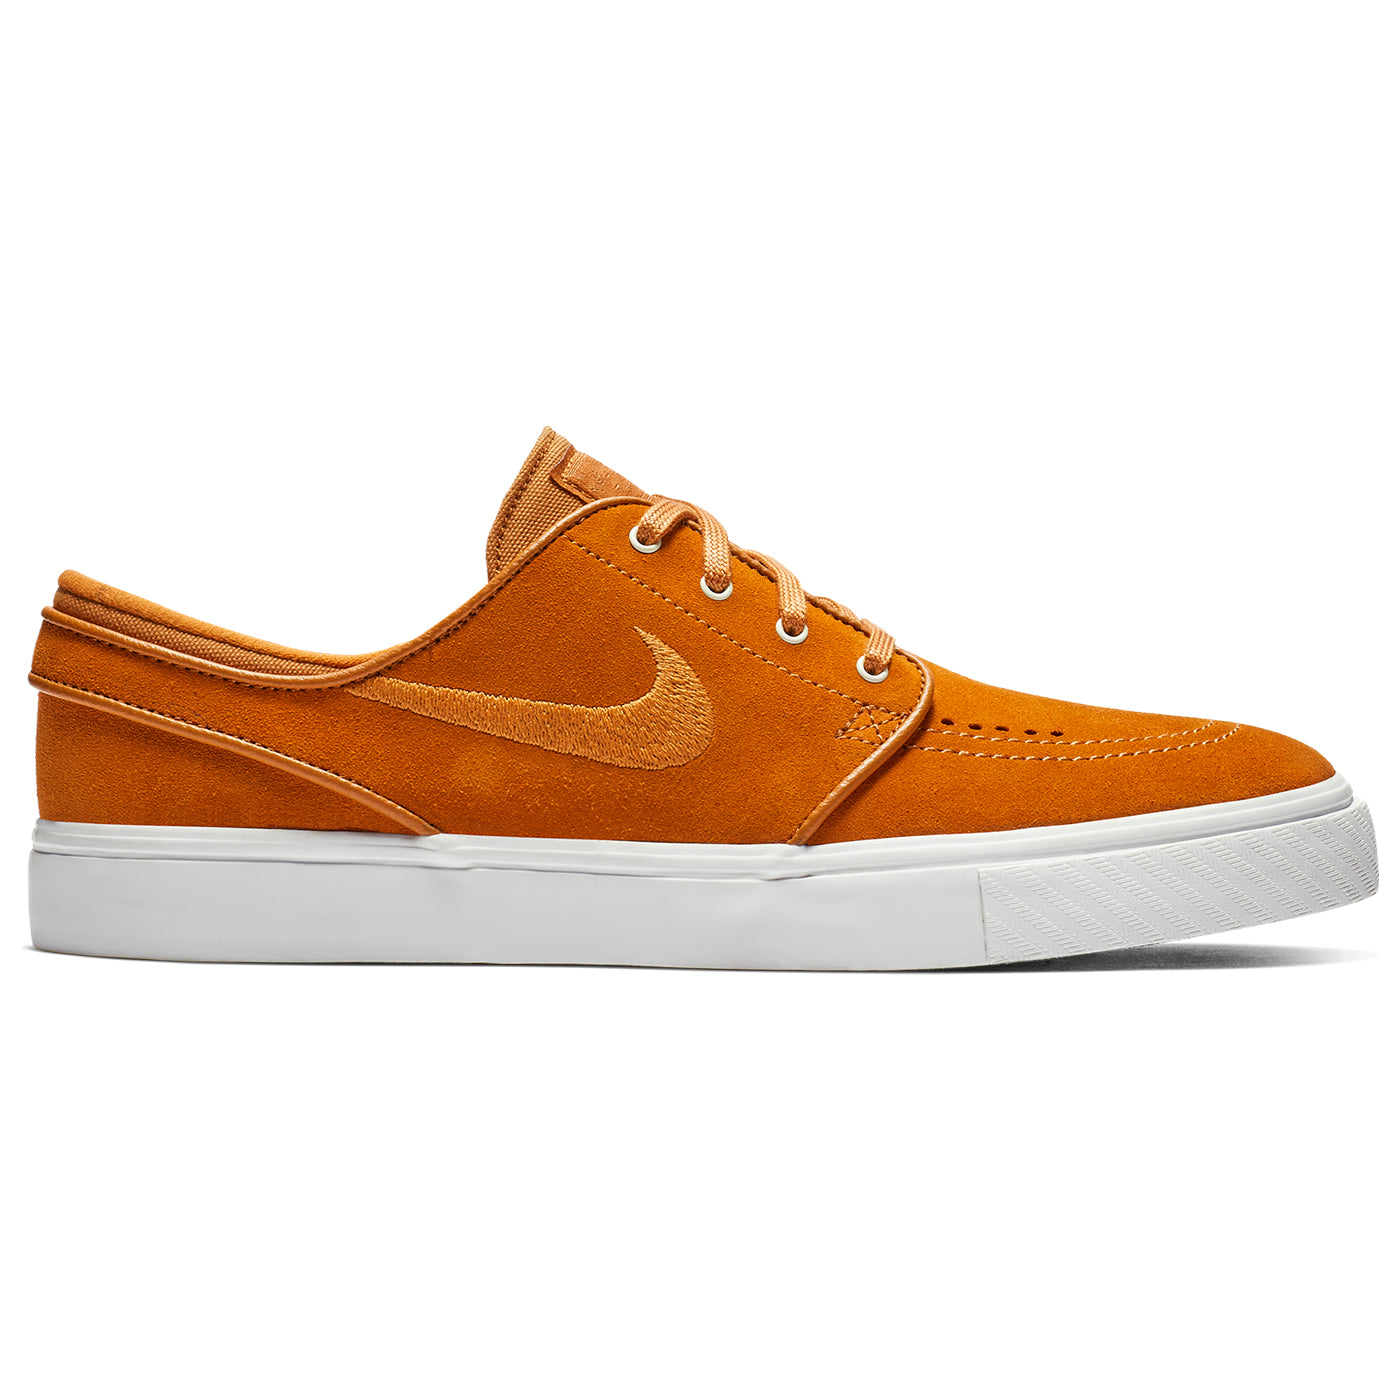 best loved 6a037 39b21 Nike SB Zoom Stefan Janoski Shoes - Cinder Orange   Cinder Orange - White